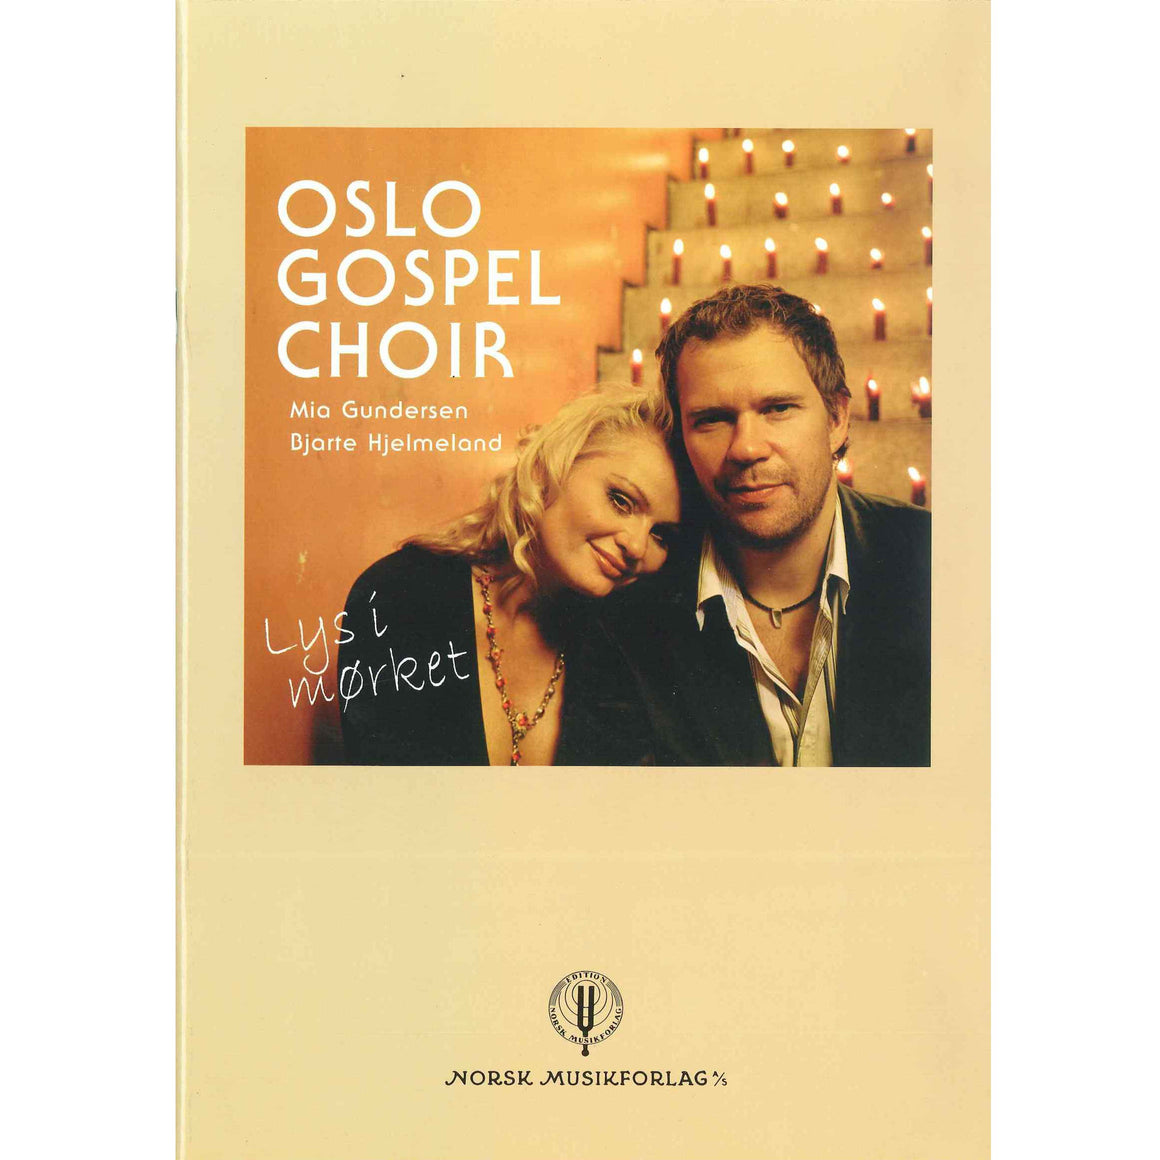 Oslo Gospel Choir: Lys i mørket